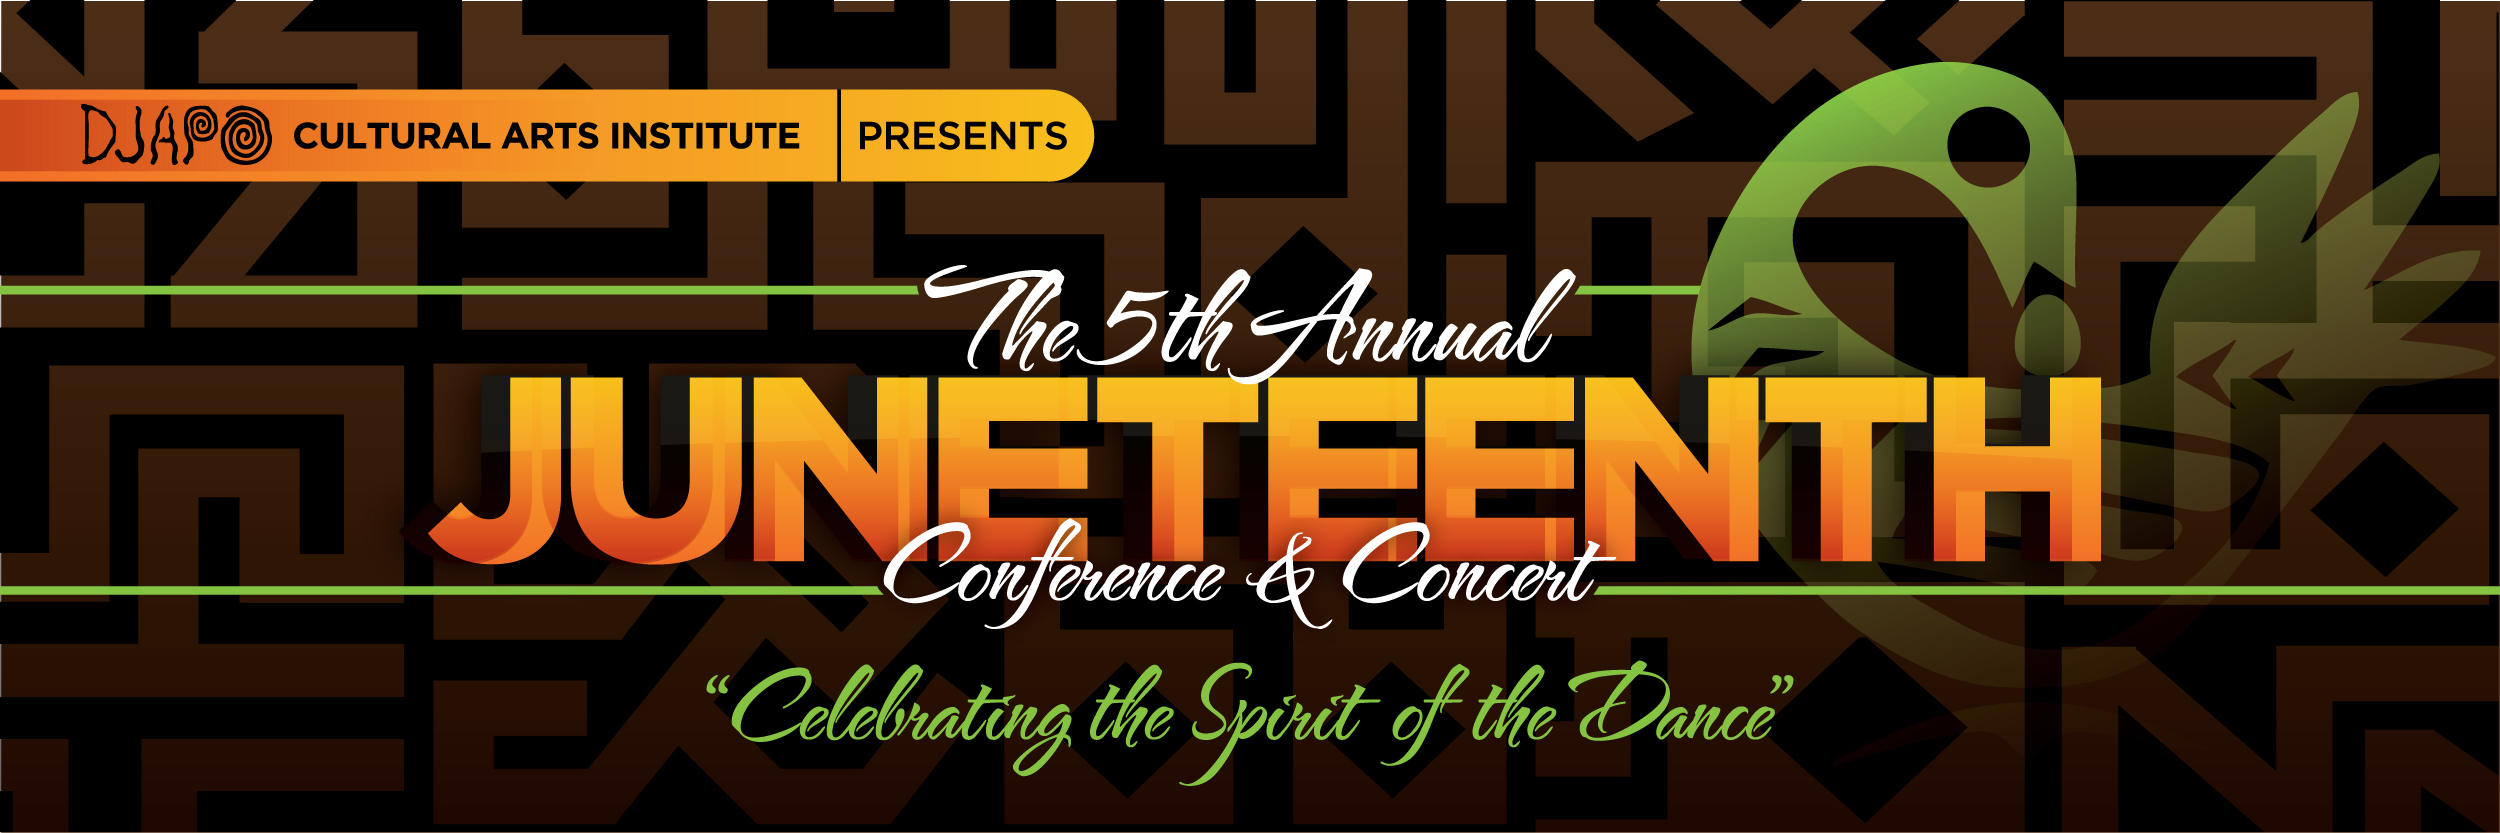 Photo of 5th Annual Juneteenth Concert